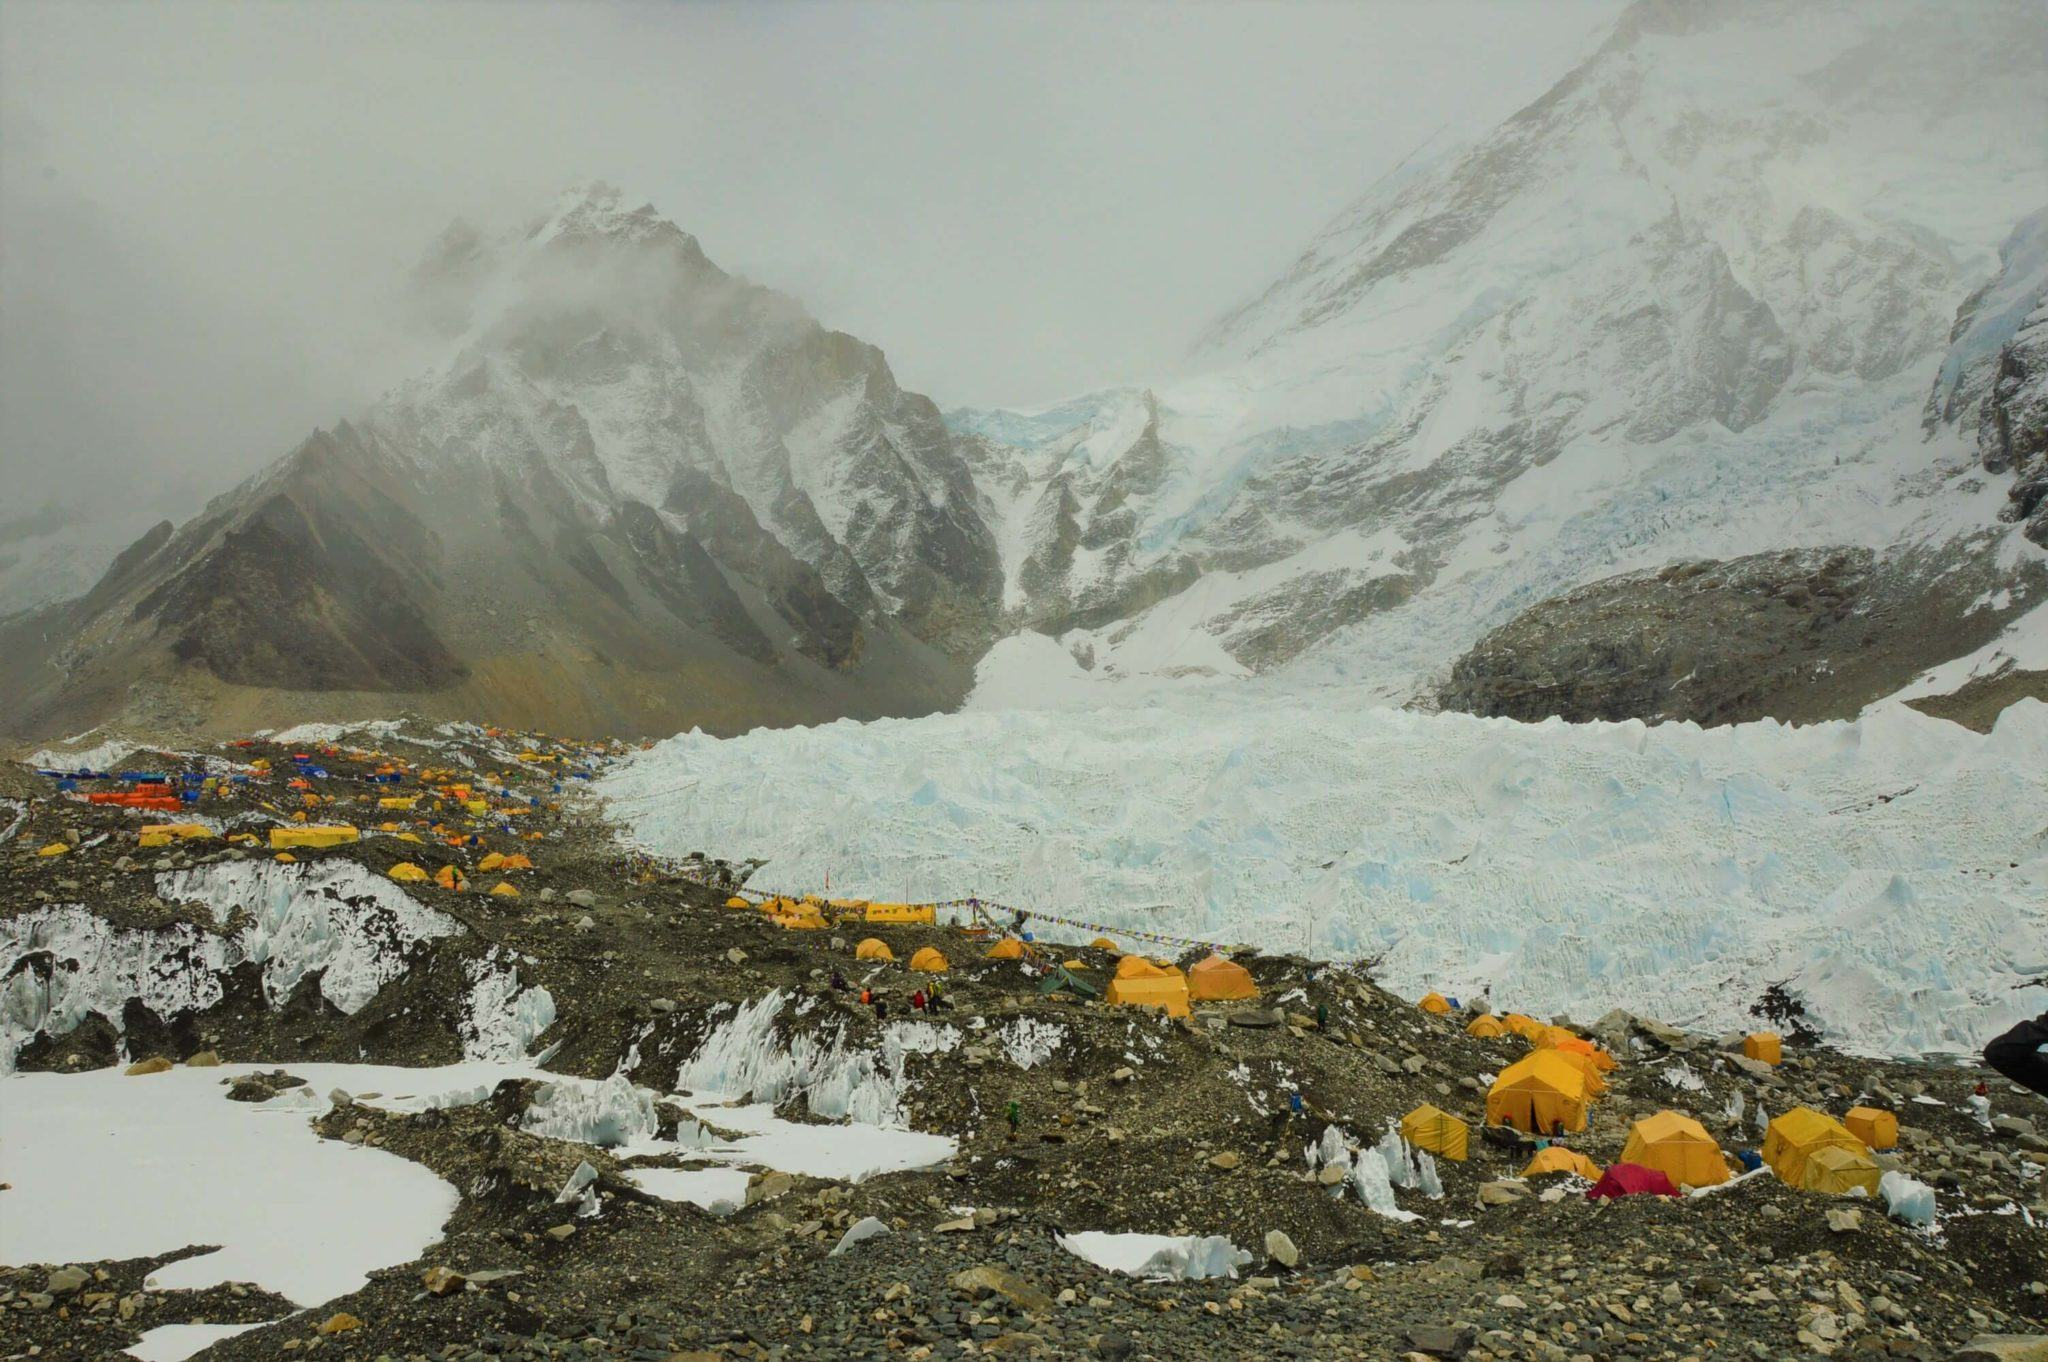 trek-to-everest-base-camp